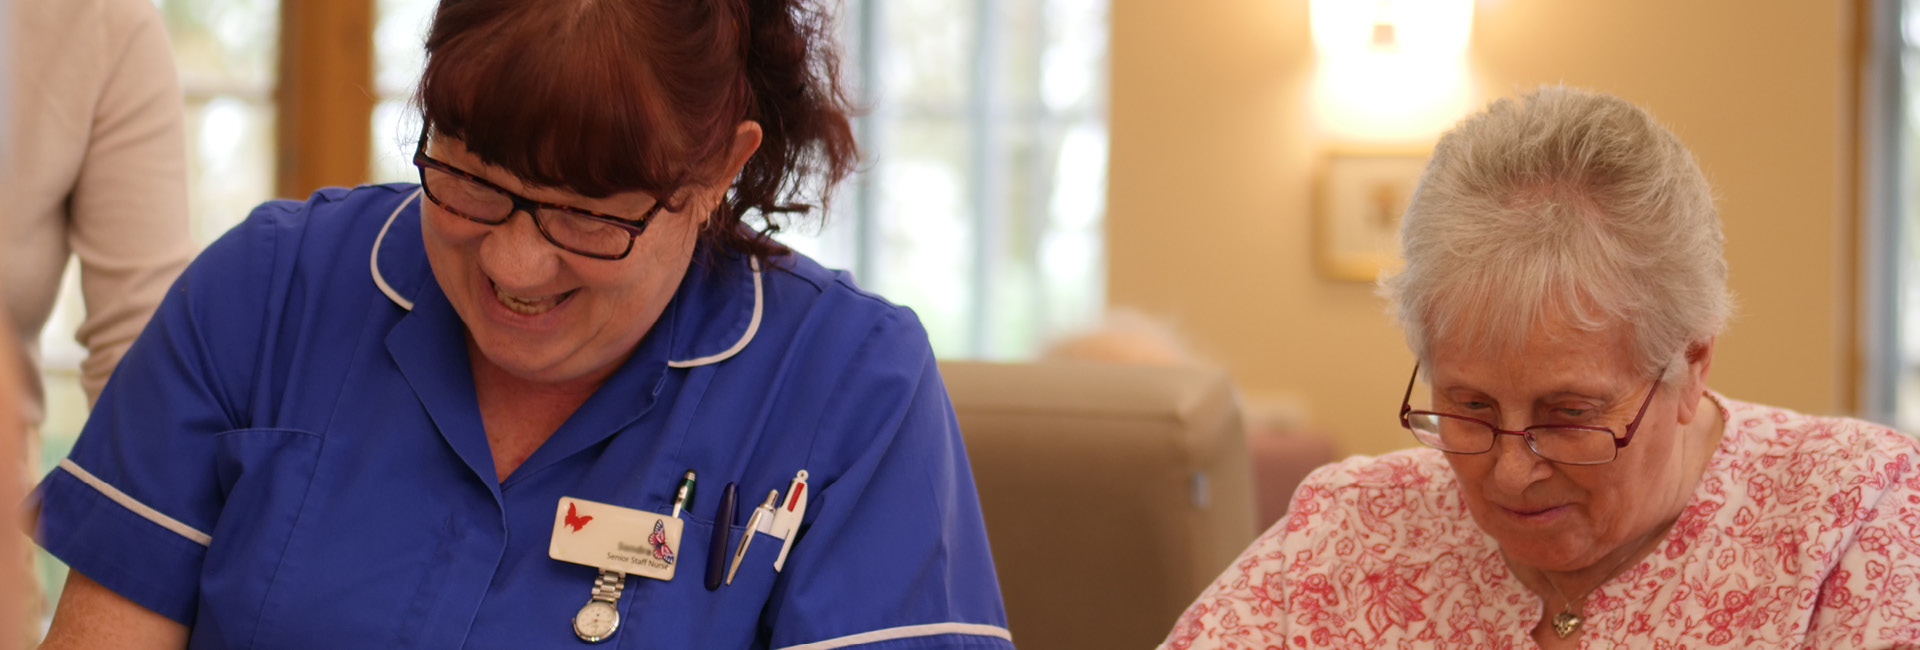 The Myton Hospices - Coventry - Leamington Spa - Rugby - Southam - Areas We Cover - Hospice Care - Patient - Coming to Myton